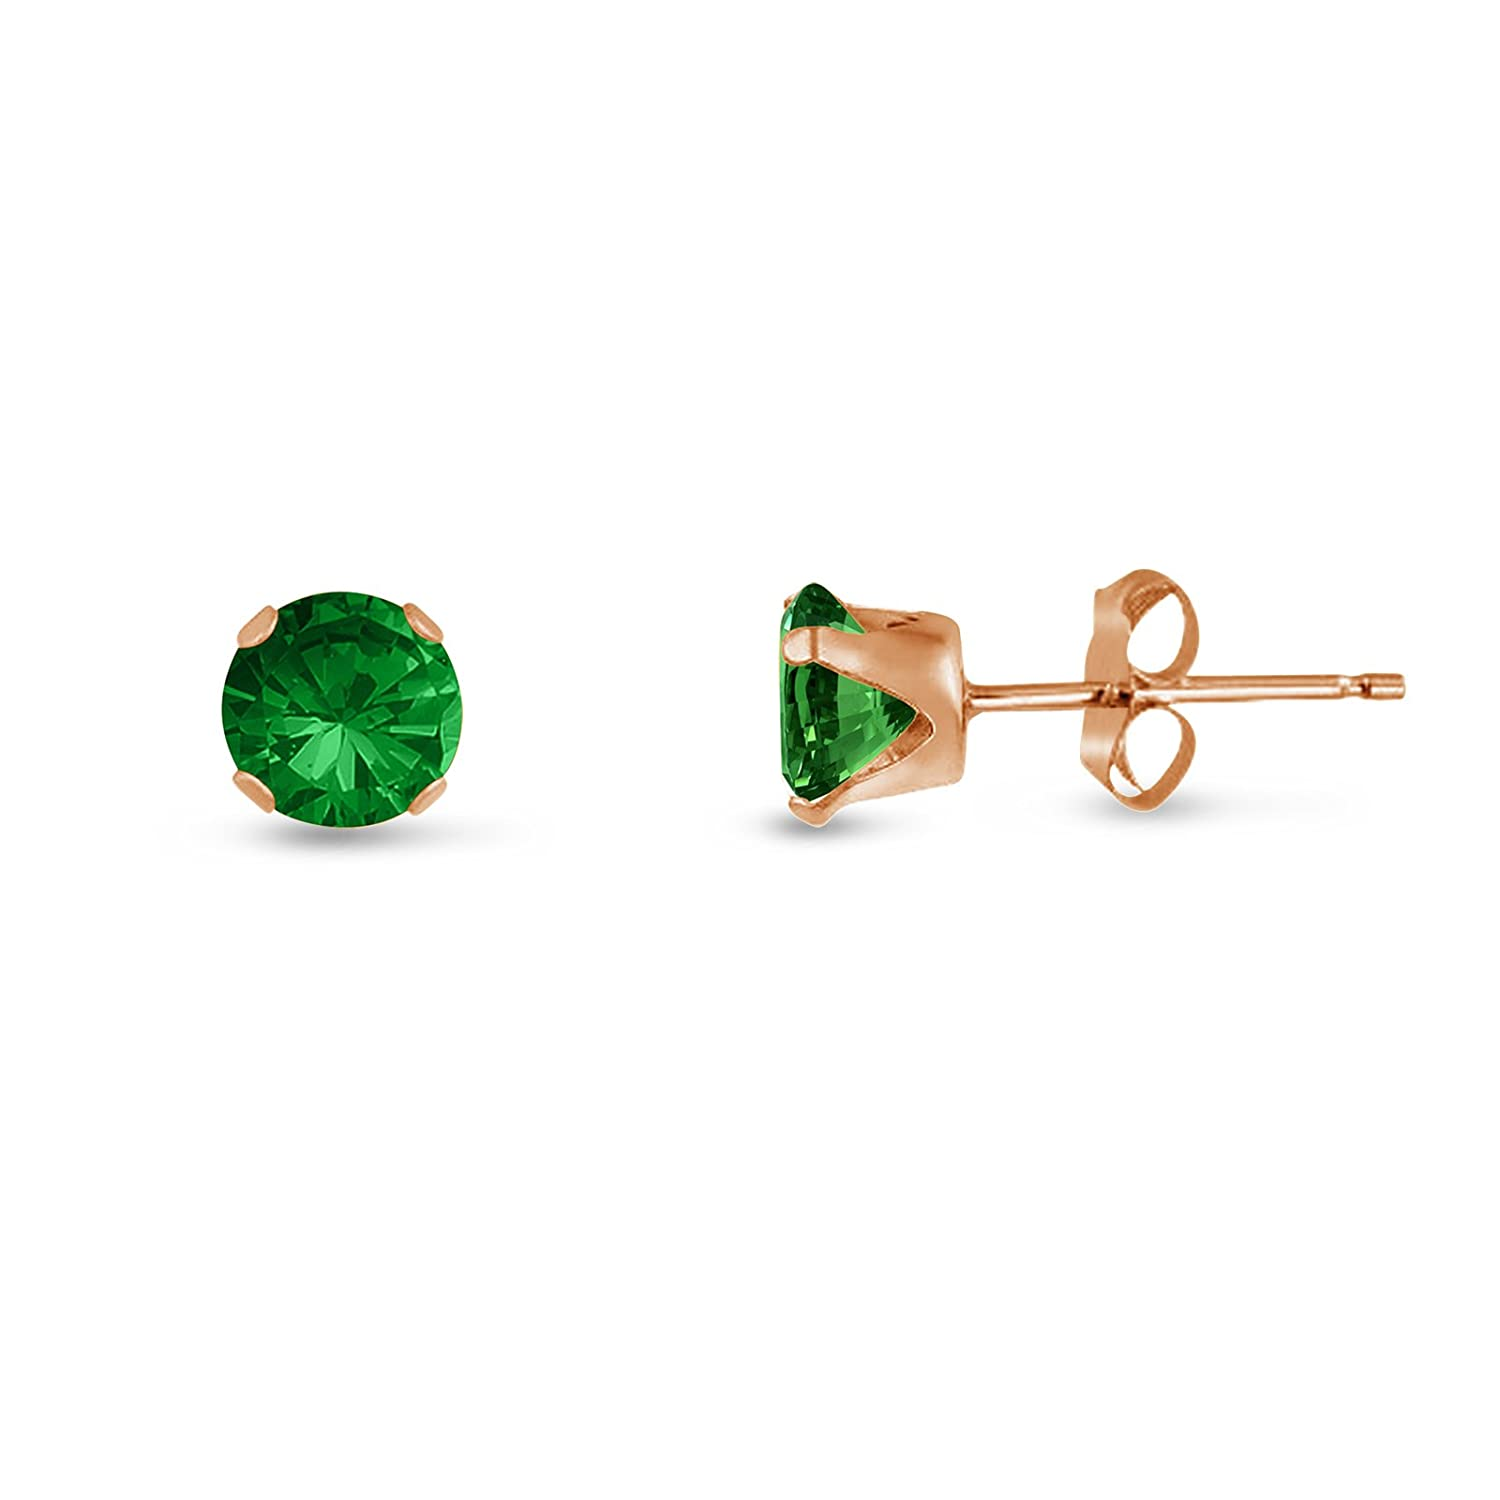 14k Yellow or Rose Goldplate Sterling Silver Round 3mm Simulated Emerald CZ Stud Earrings 0.36 cttw